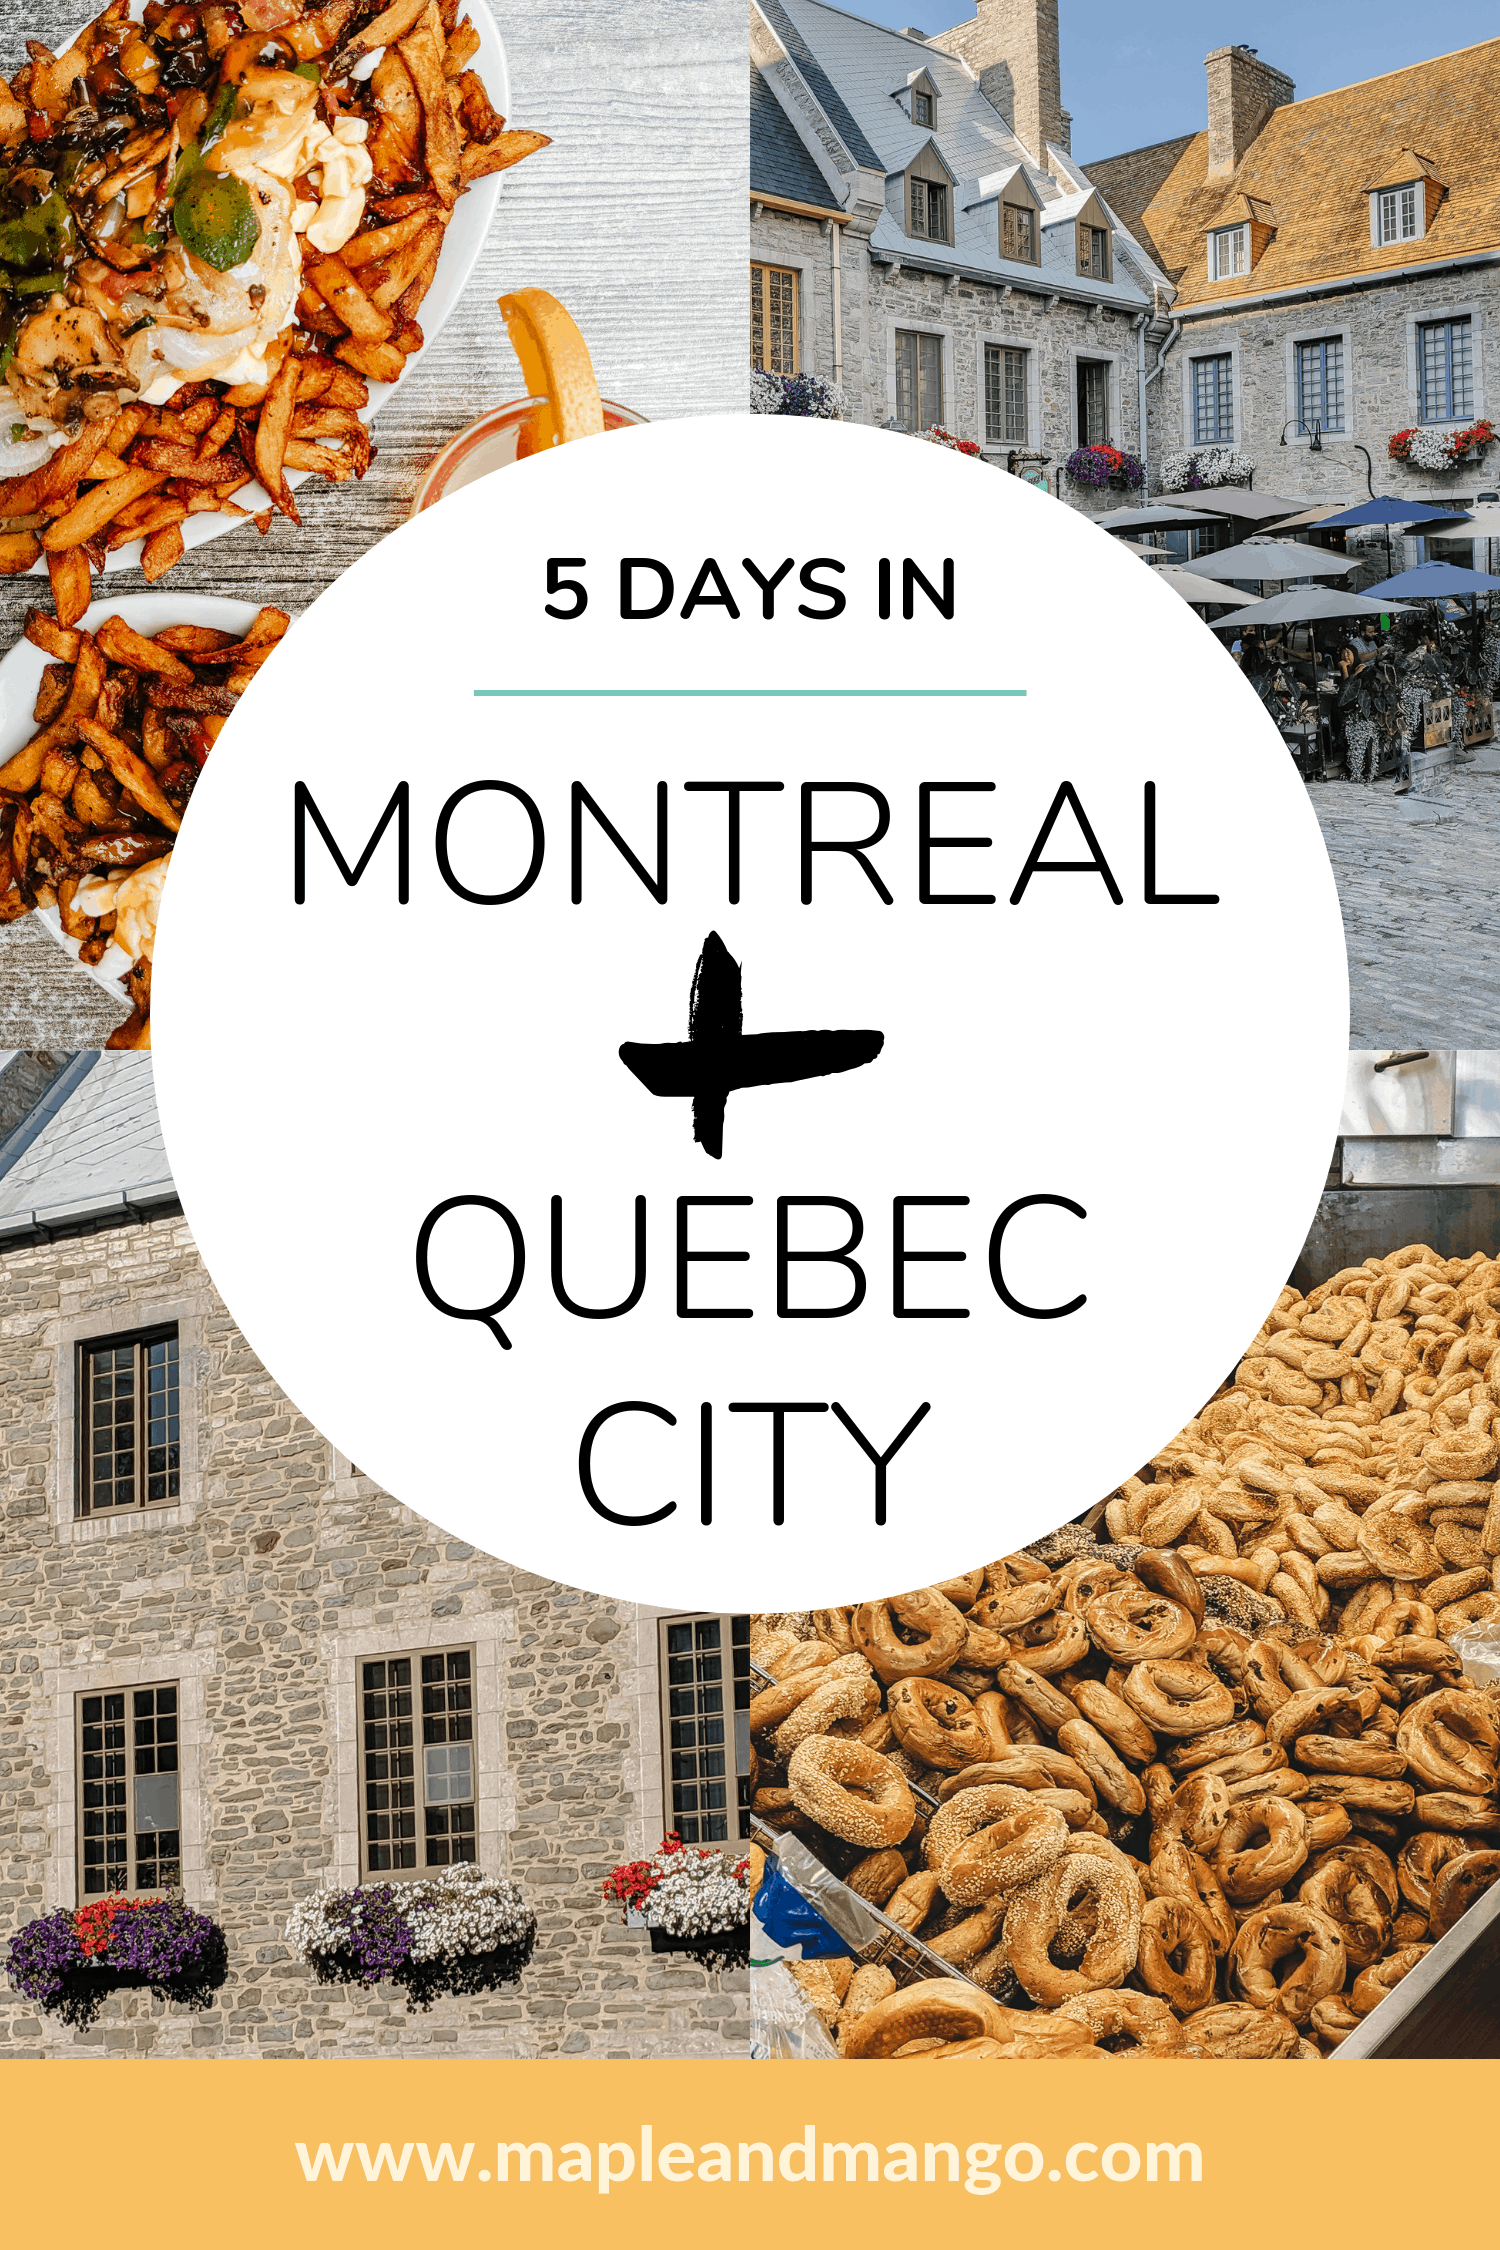 Pinterest Image for 5 Days In Montreal and Quebec City